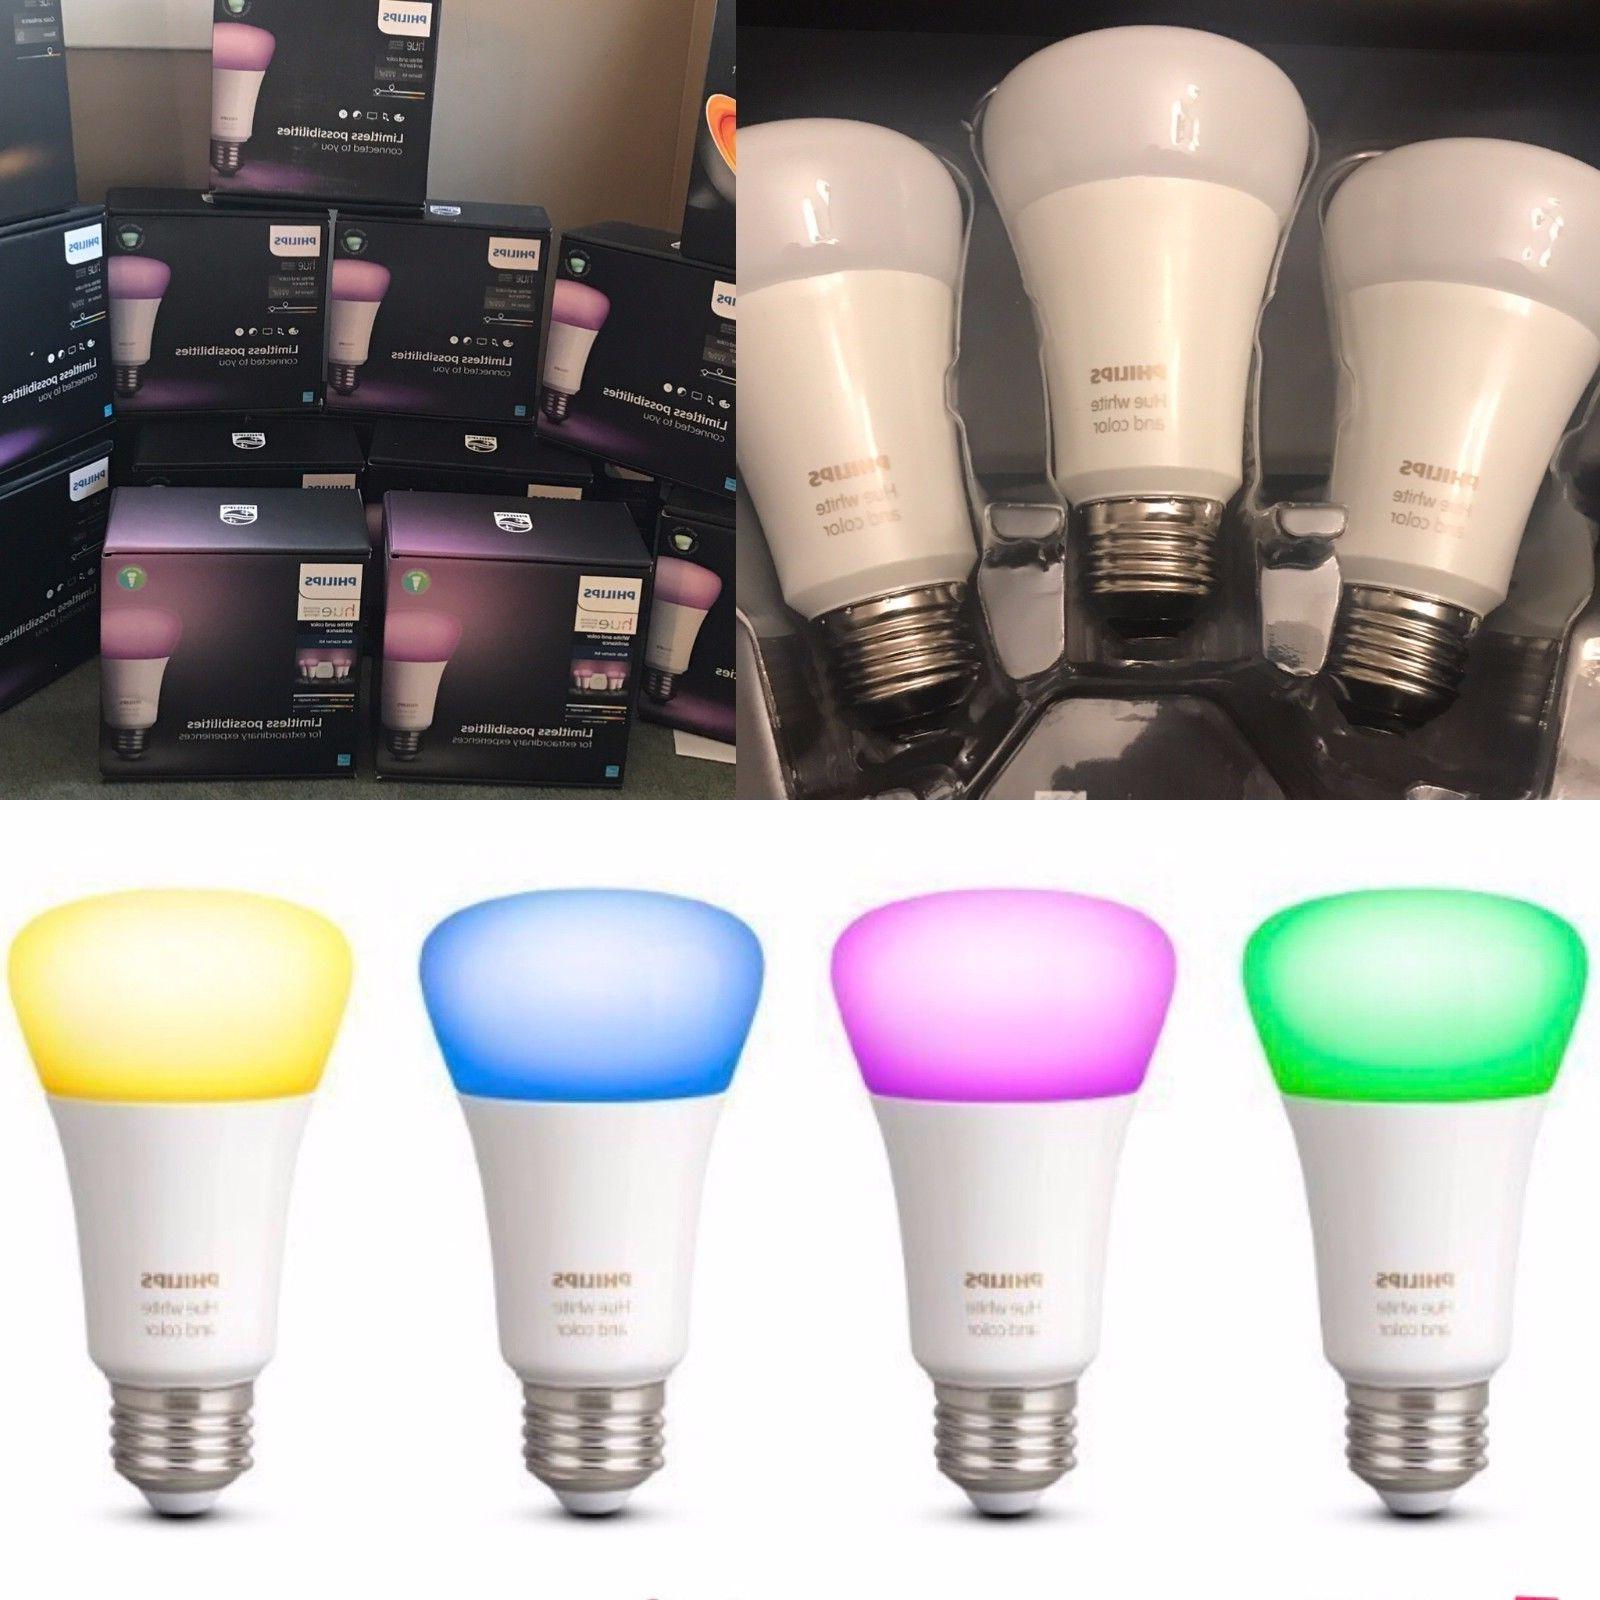 hue light bulbs expansion add on sets